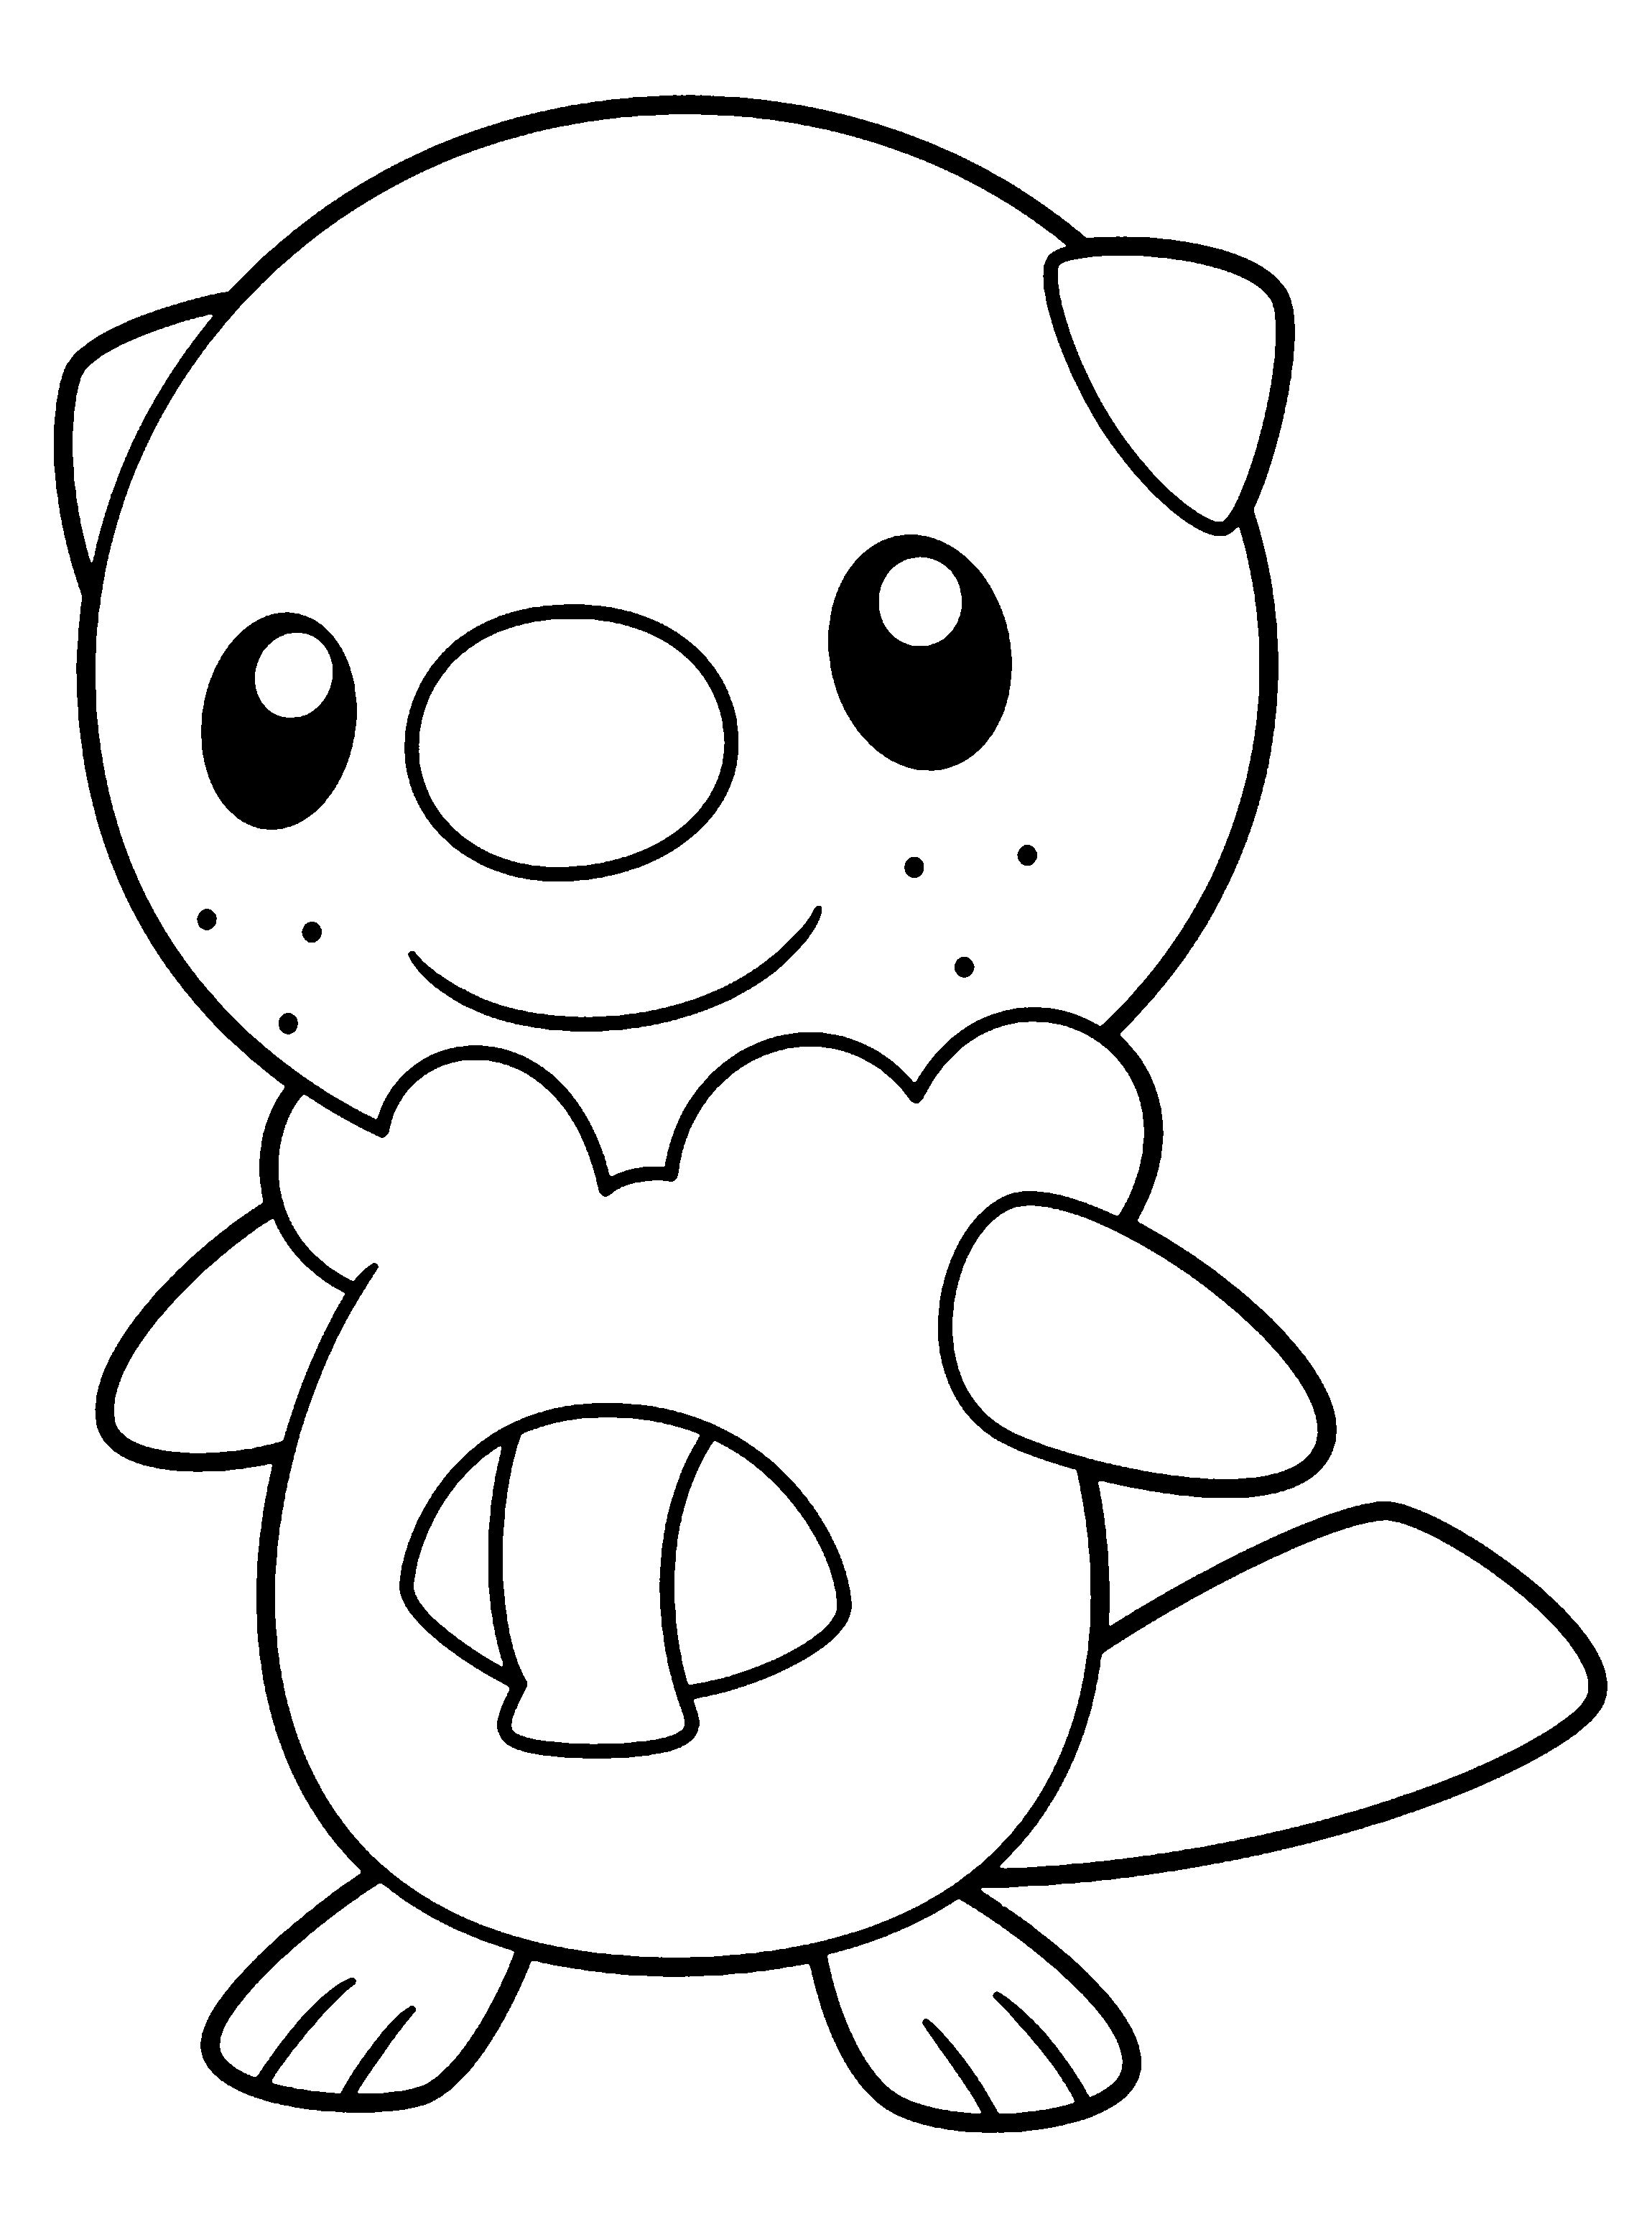 Pokemon Coloring Pages Black And White Coloring Pages Allow Kids To Accompany Their Favorite Pokemon Coloring Pages Pokemon Coloring Sheets Pokemon Coloring